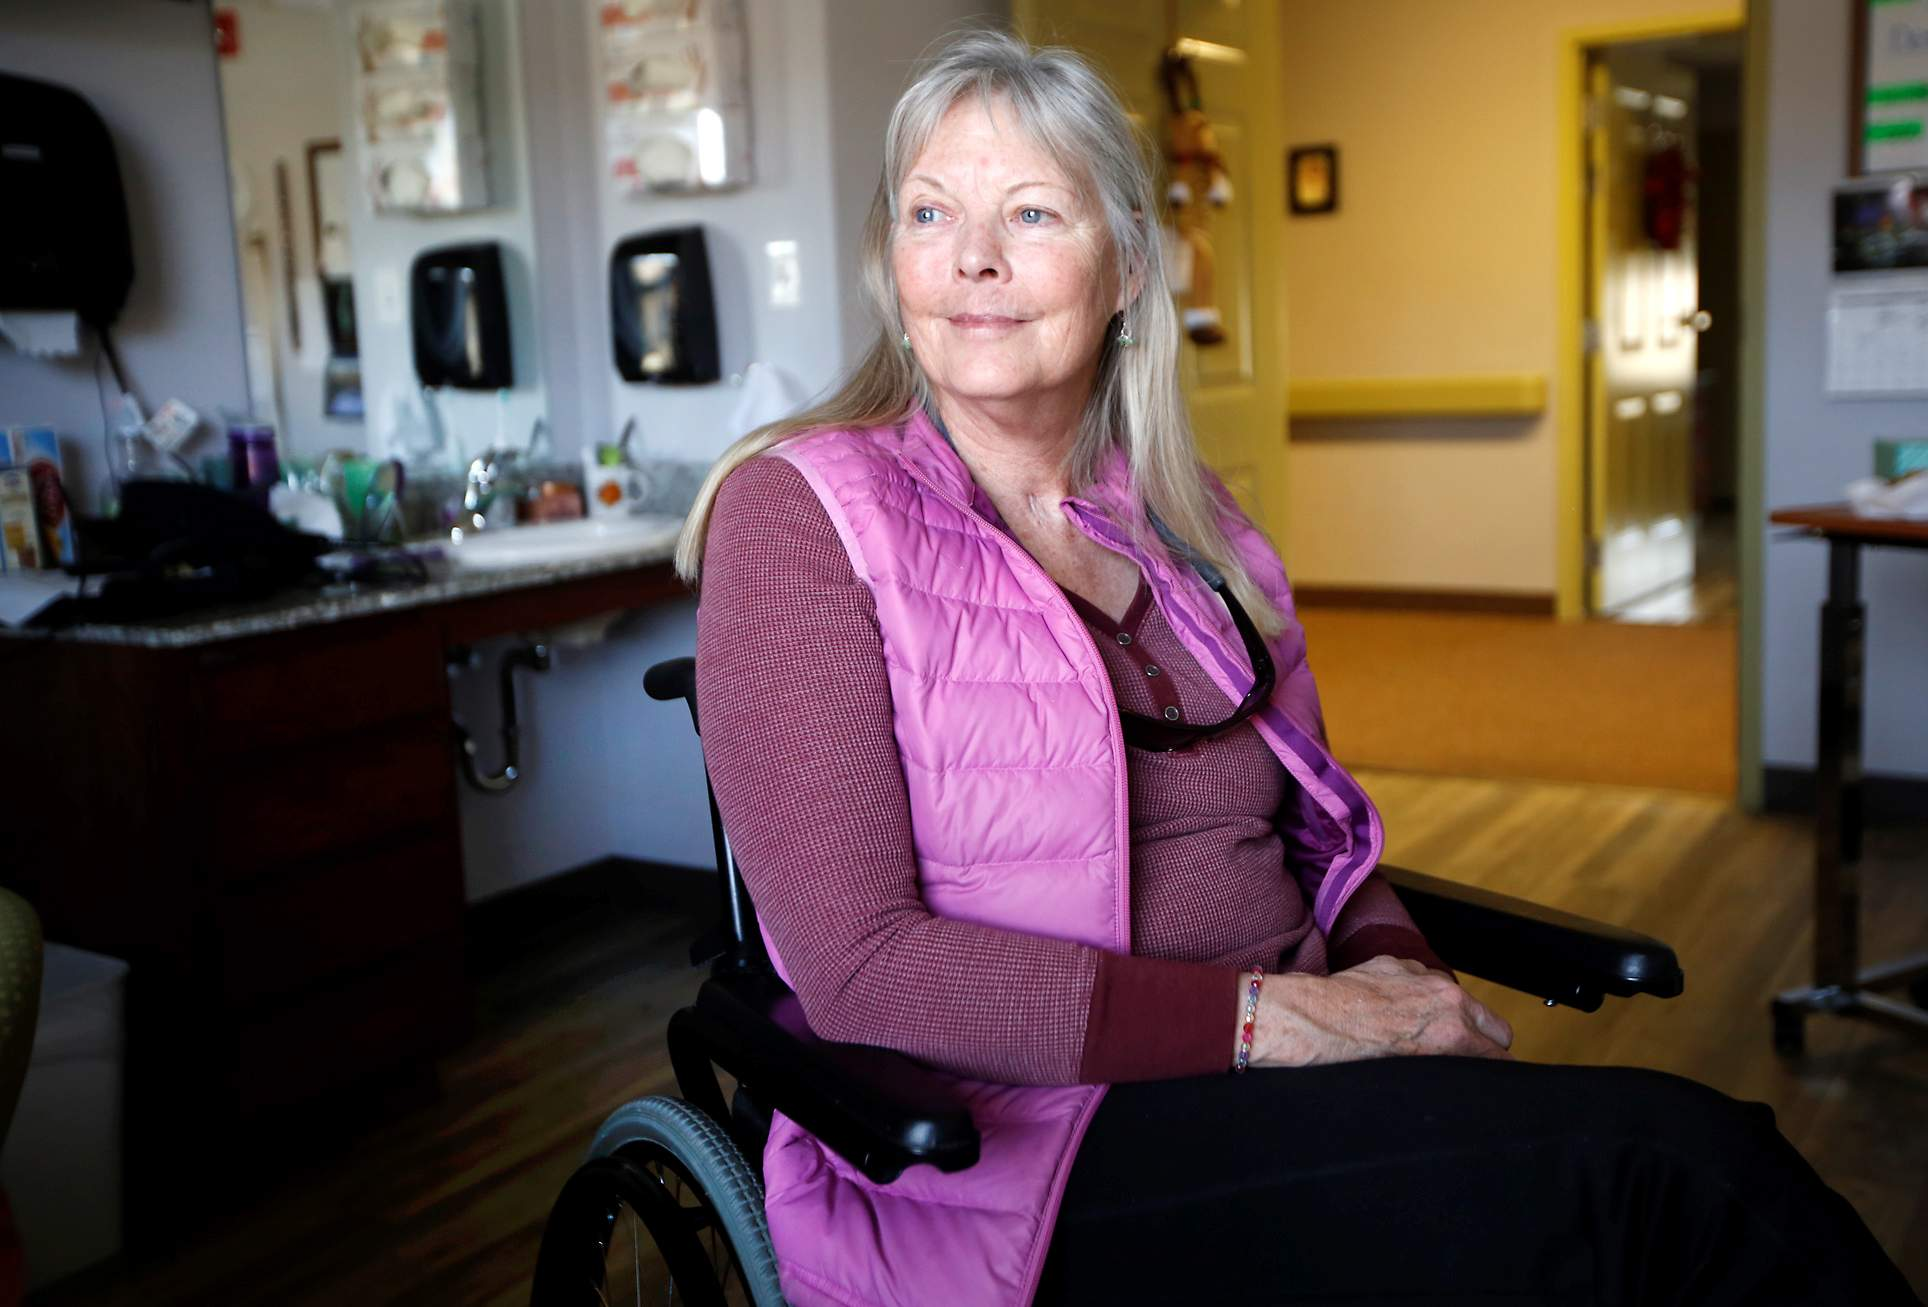 disabled, elderly feel durango's accessible-housing crunch